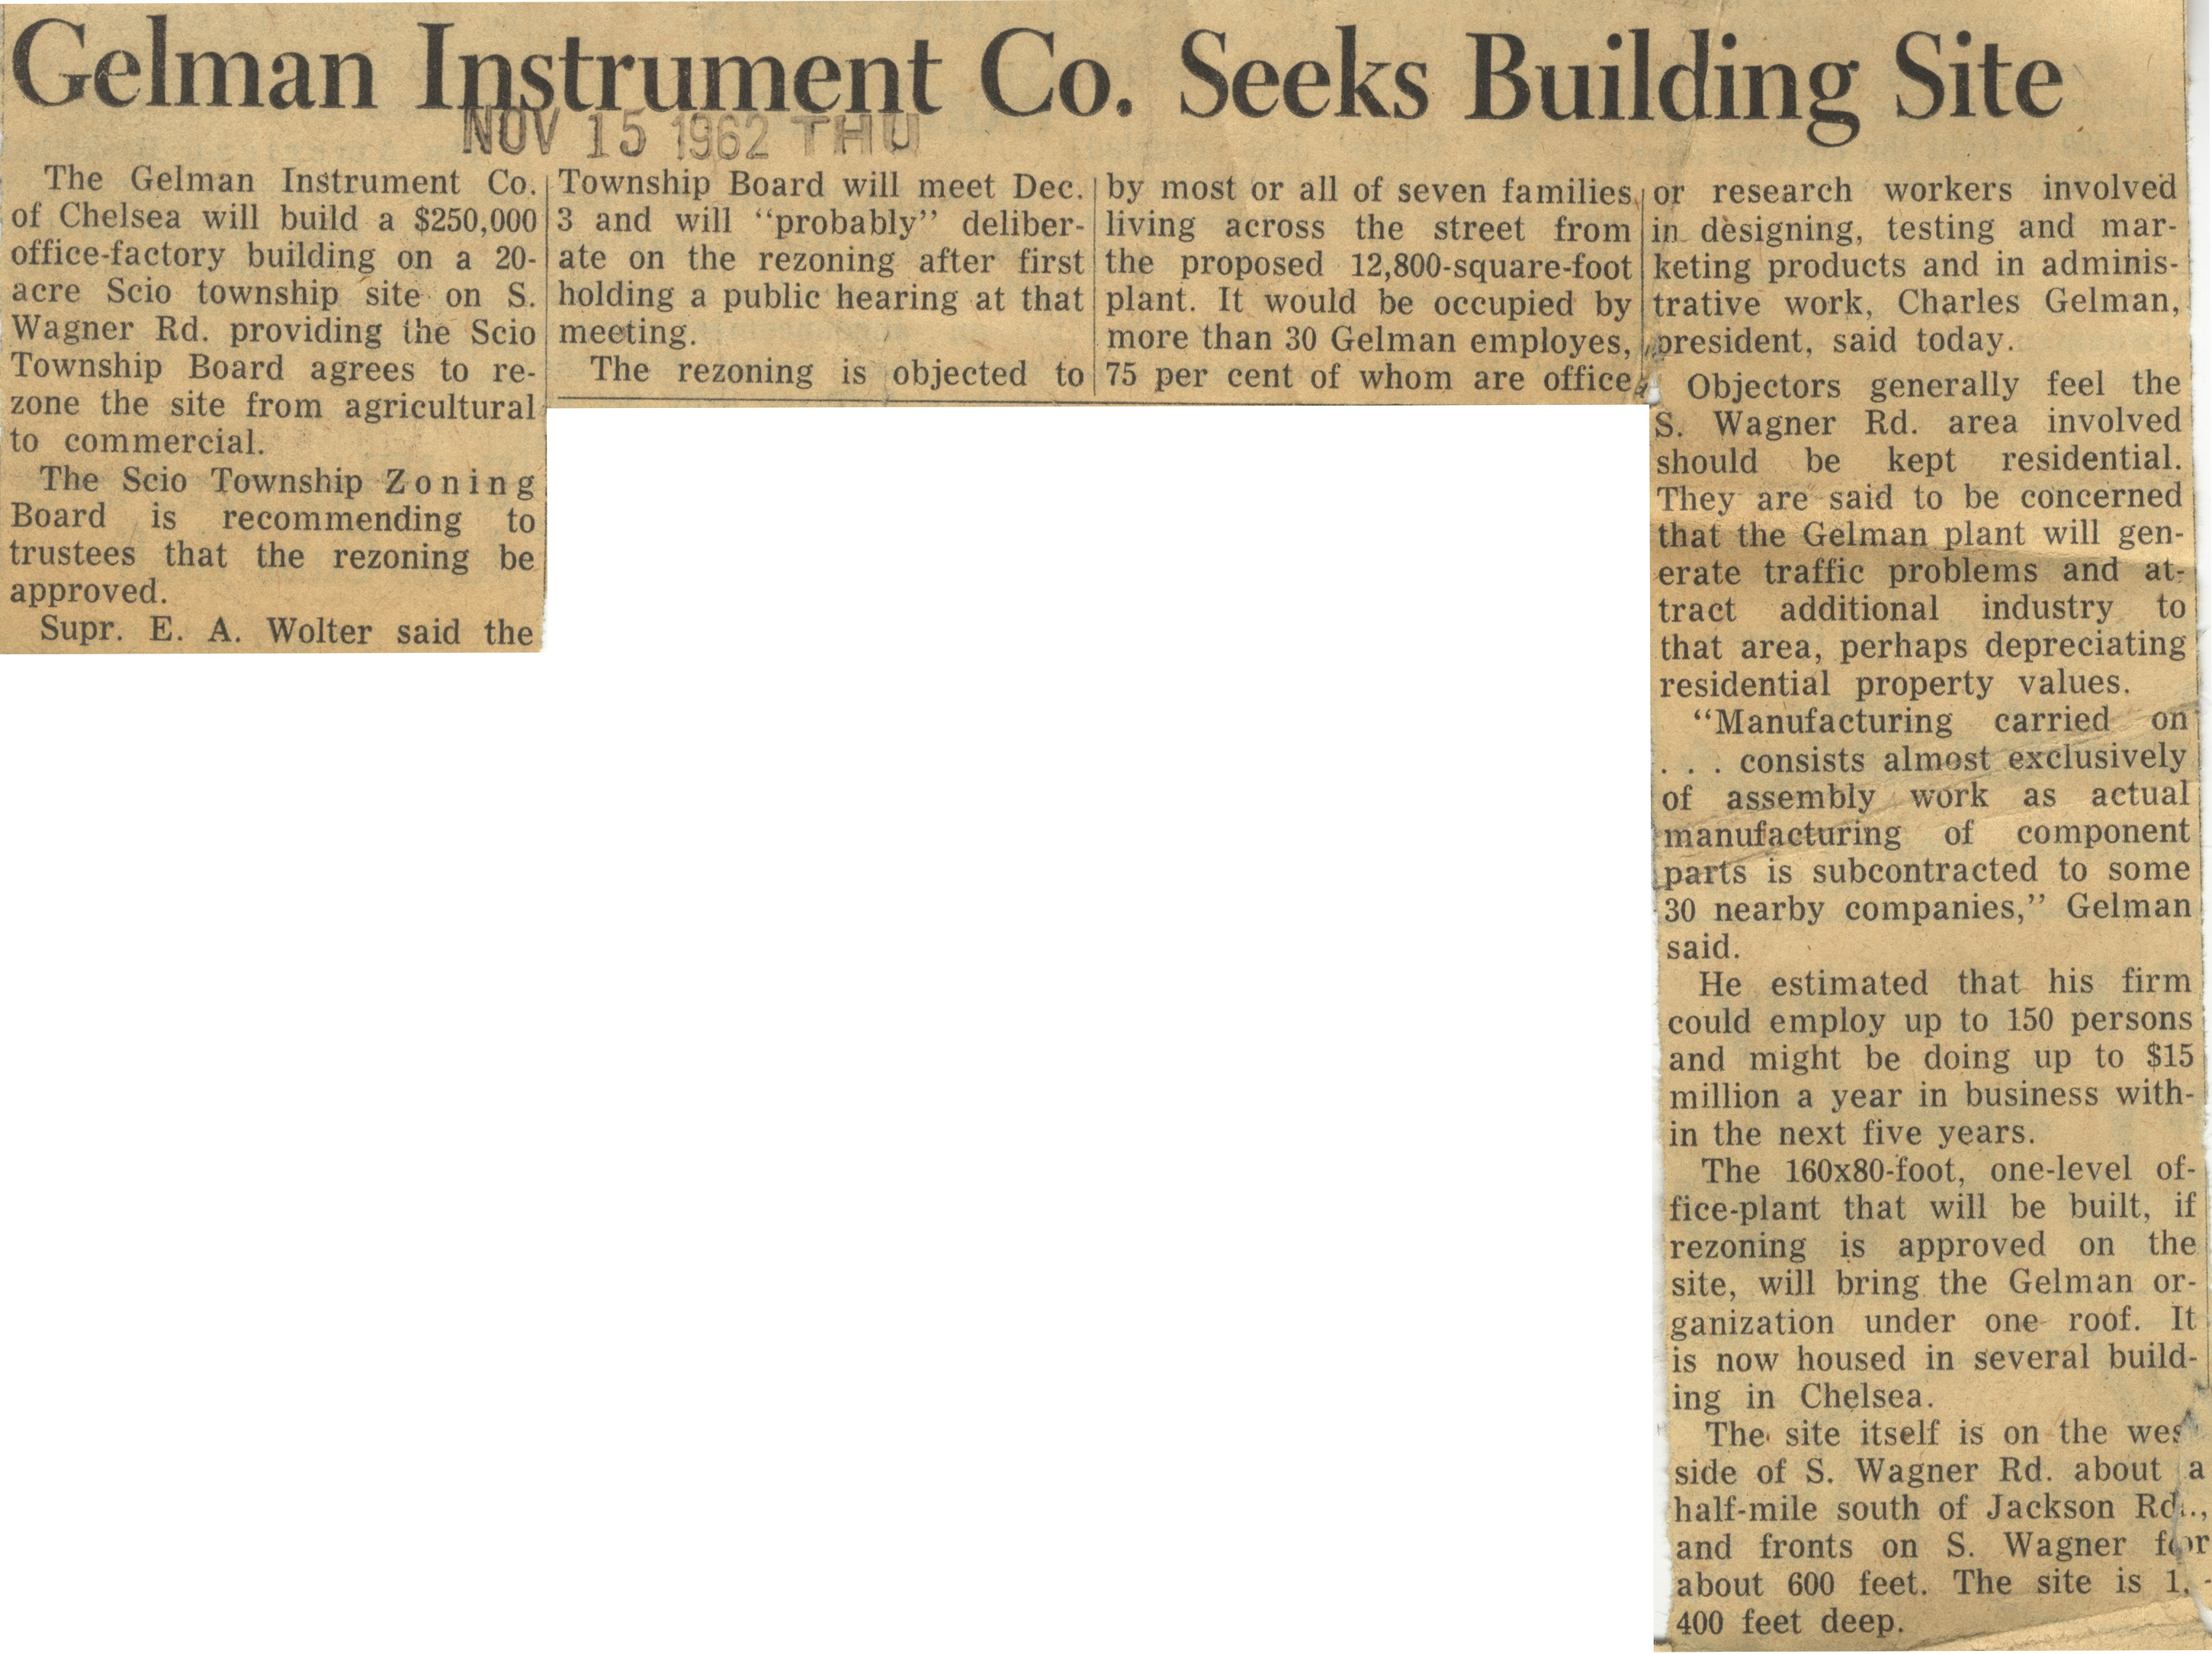 Gelman Instrument Co. Seeks Building Site image